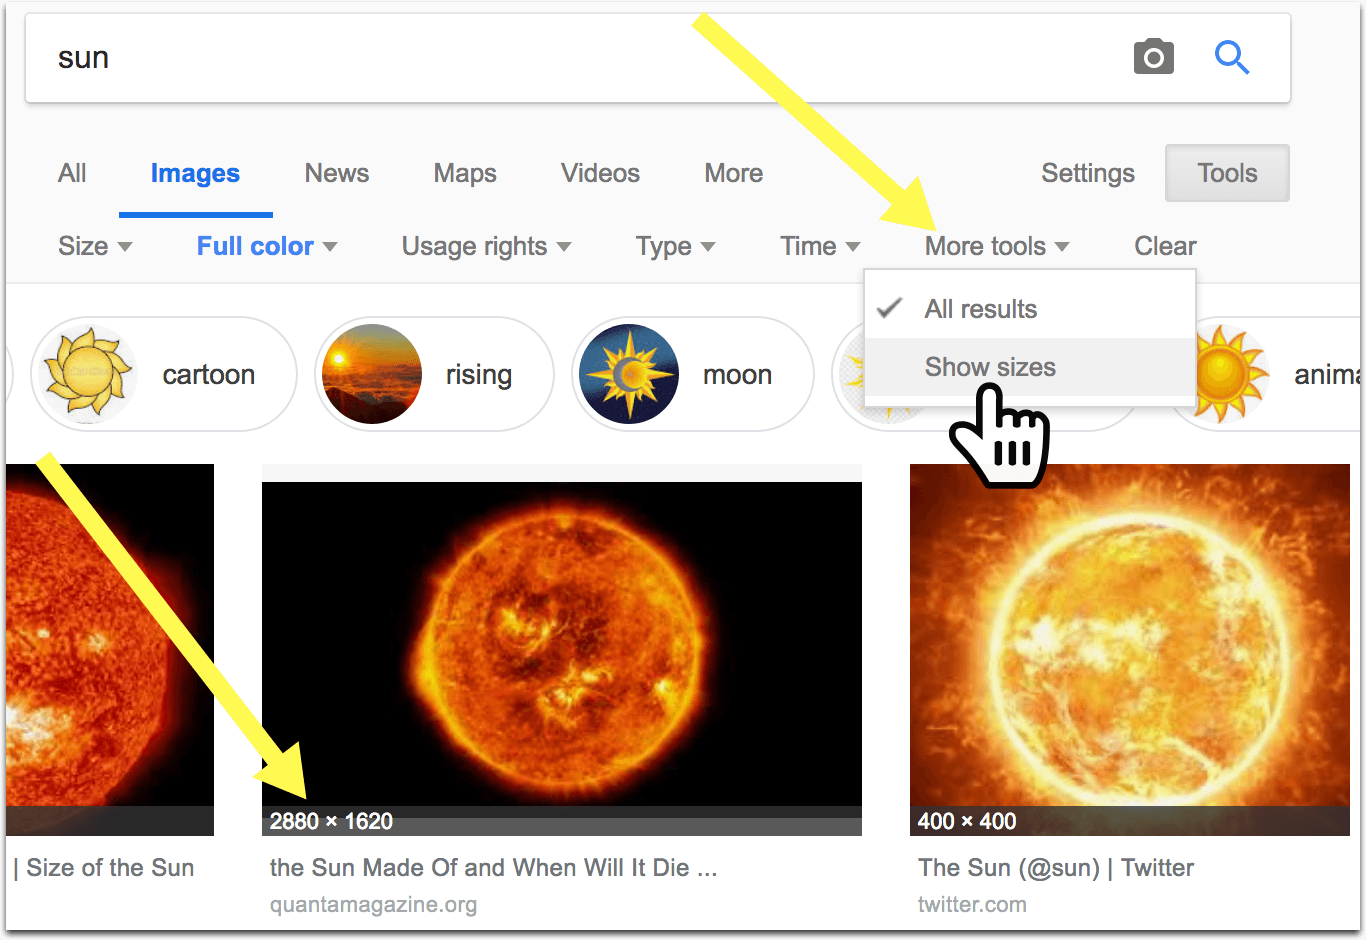 How to Find Images That Are NOT Copyrighted Using Google